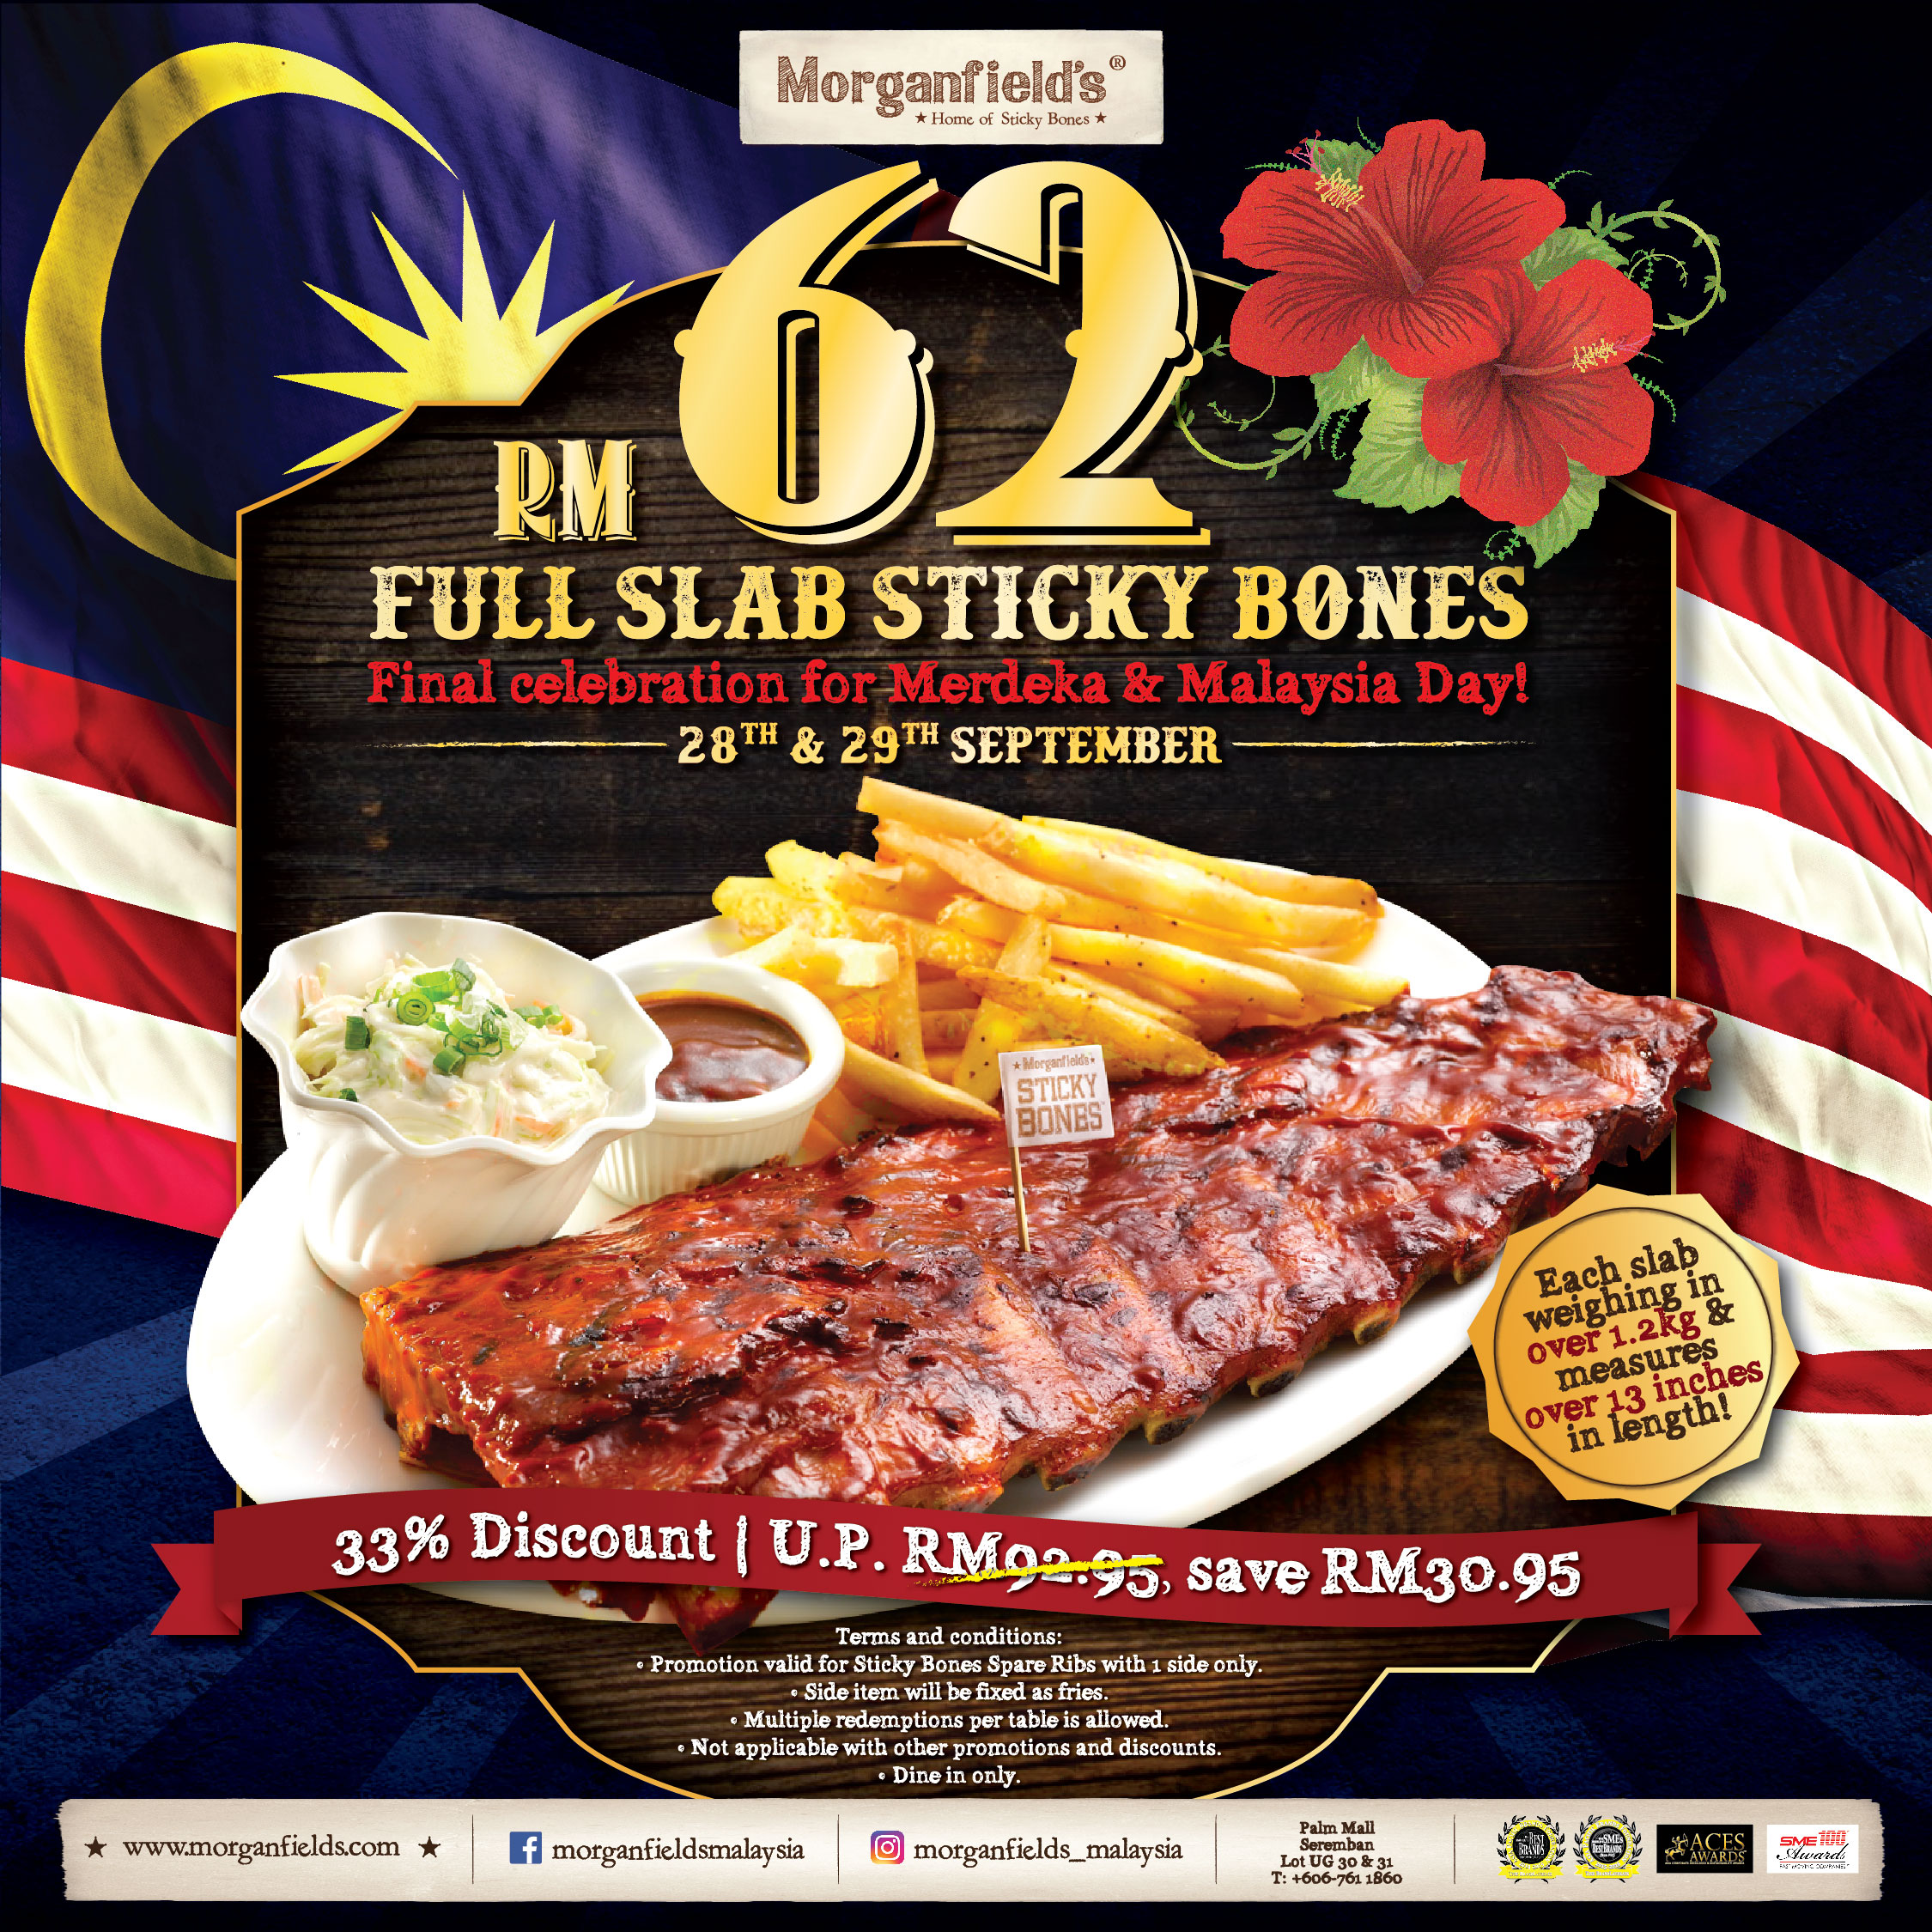 Full Slab Rib's Offer at Morganfield's